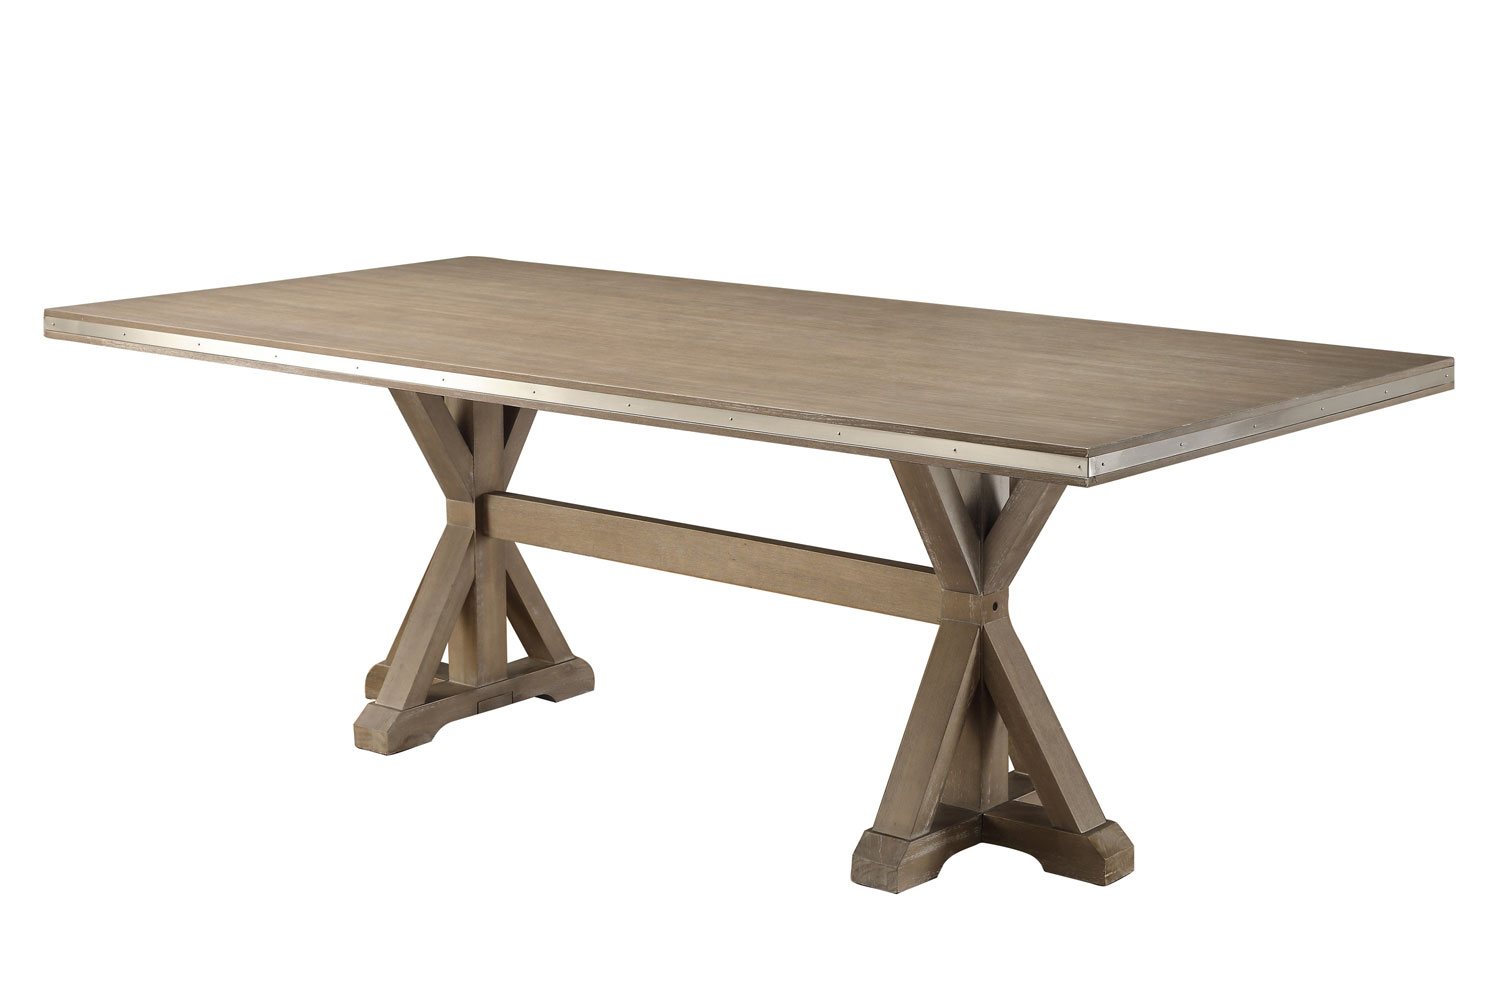 Homelegance Beaugrand Dining Table - Brown